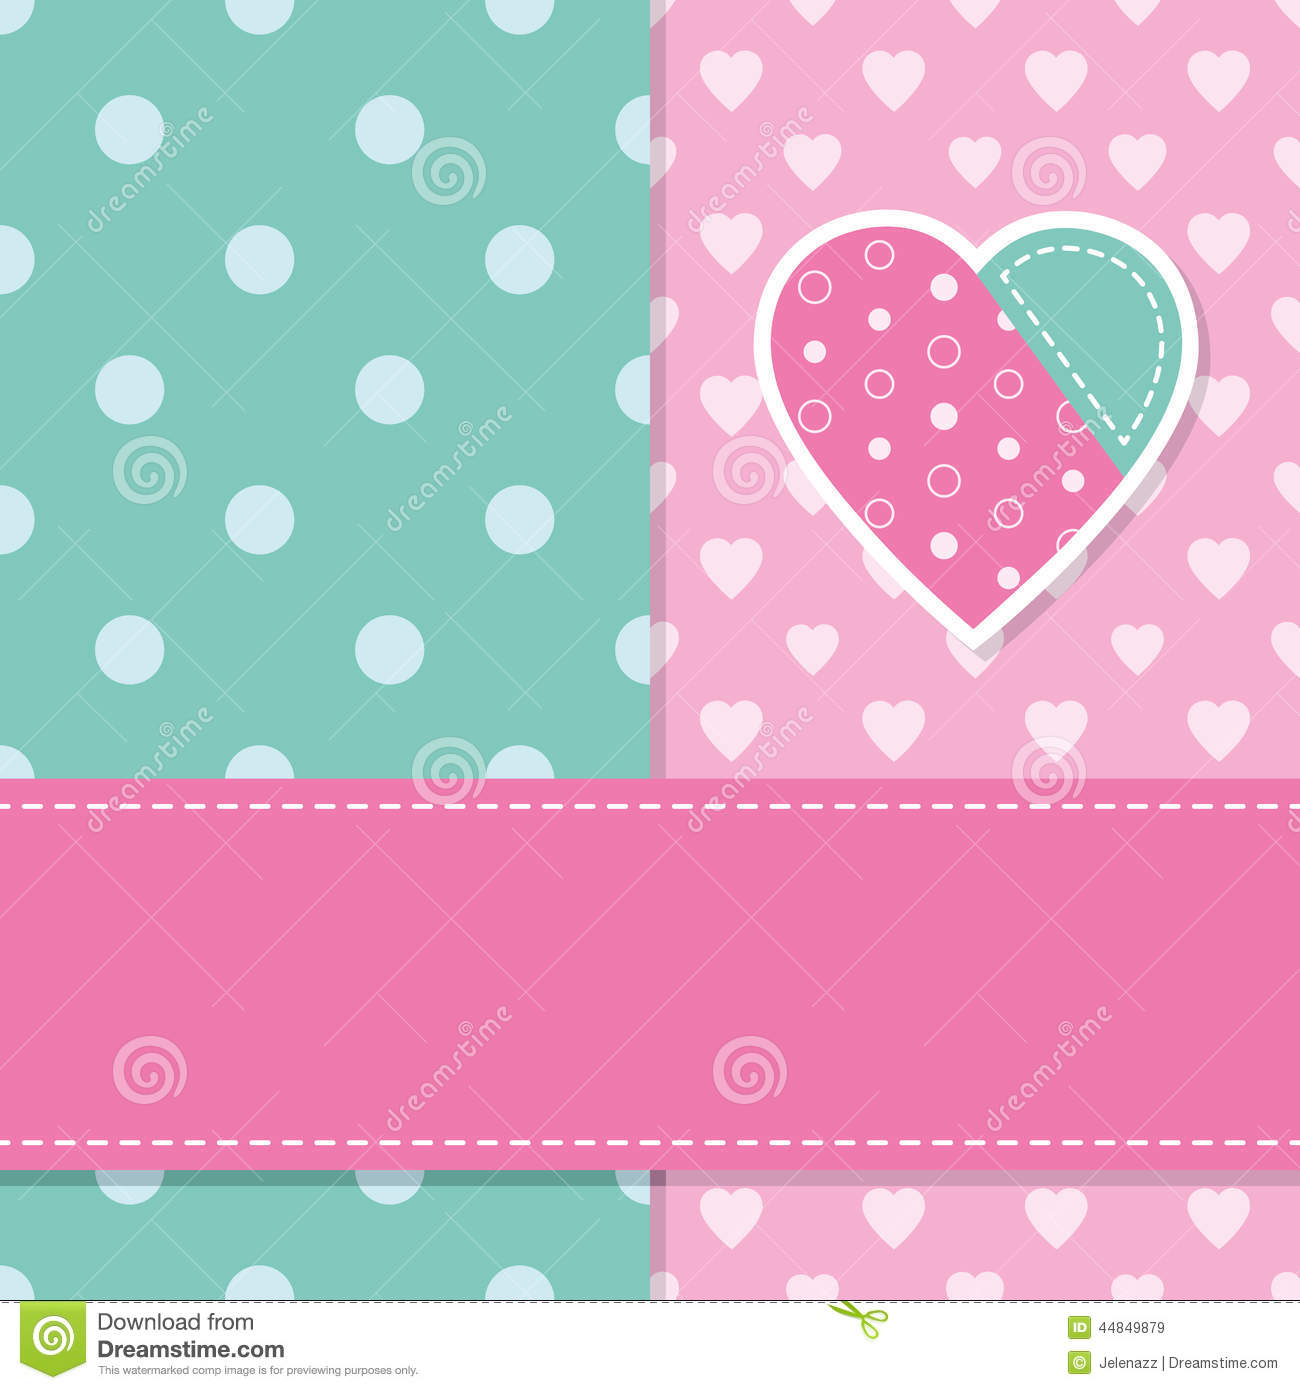 cocoppa wallpapers girl